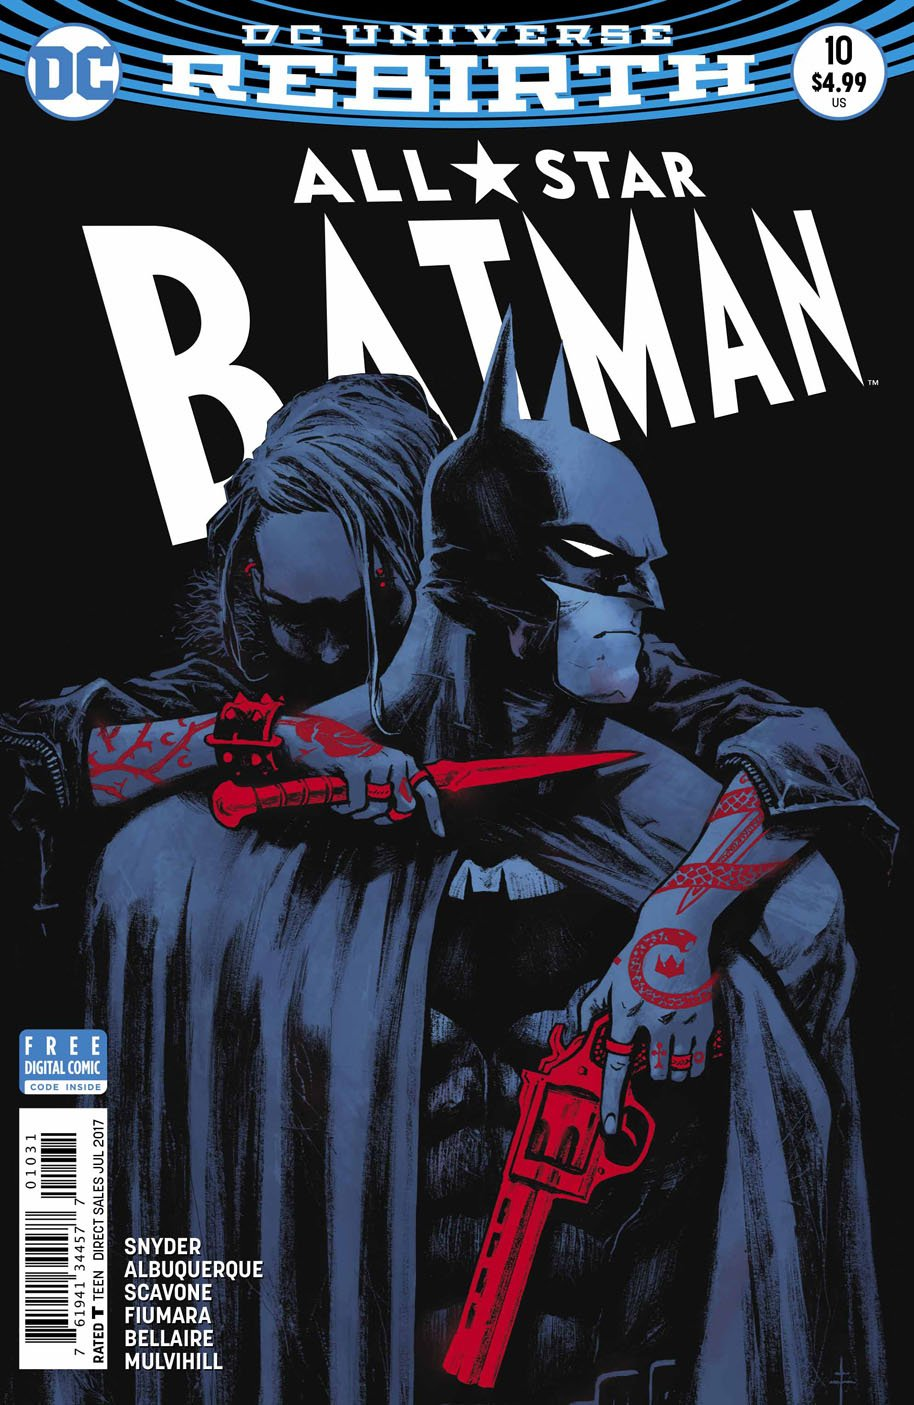 All-Star-Batman-10-Fiumara-variant-cover